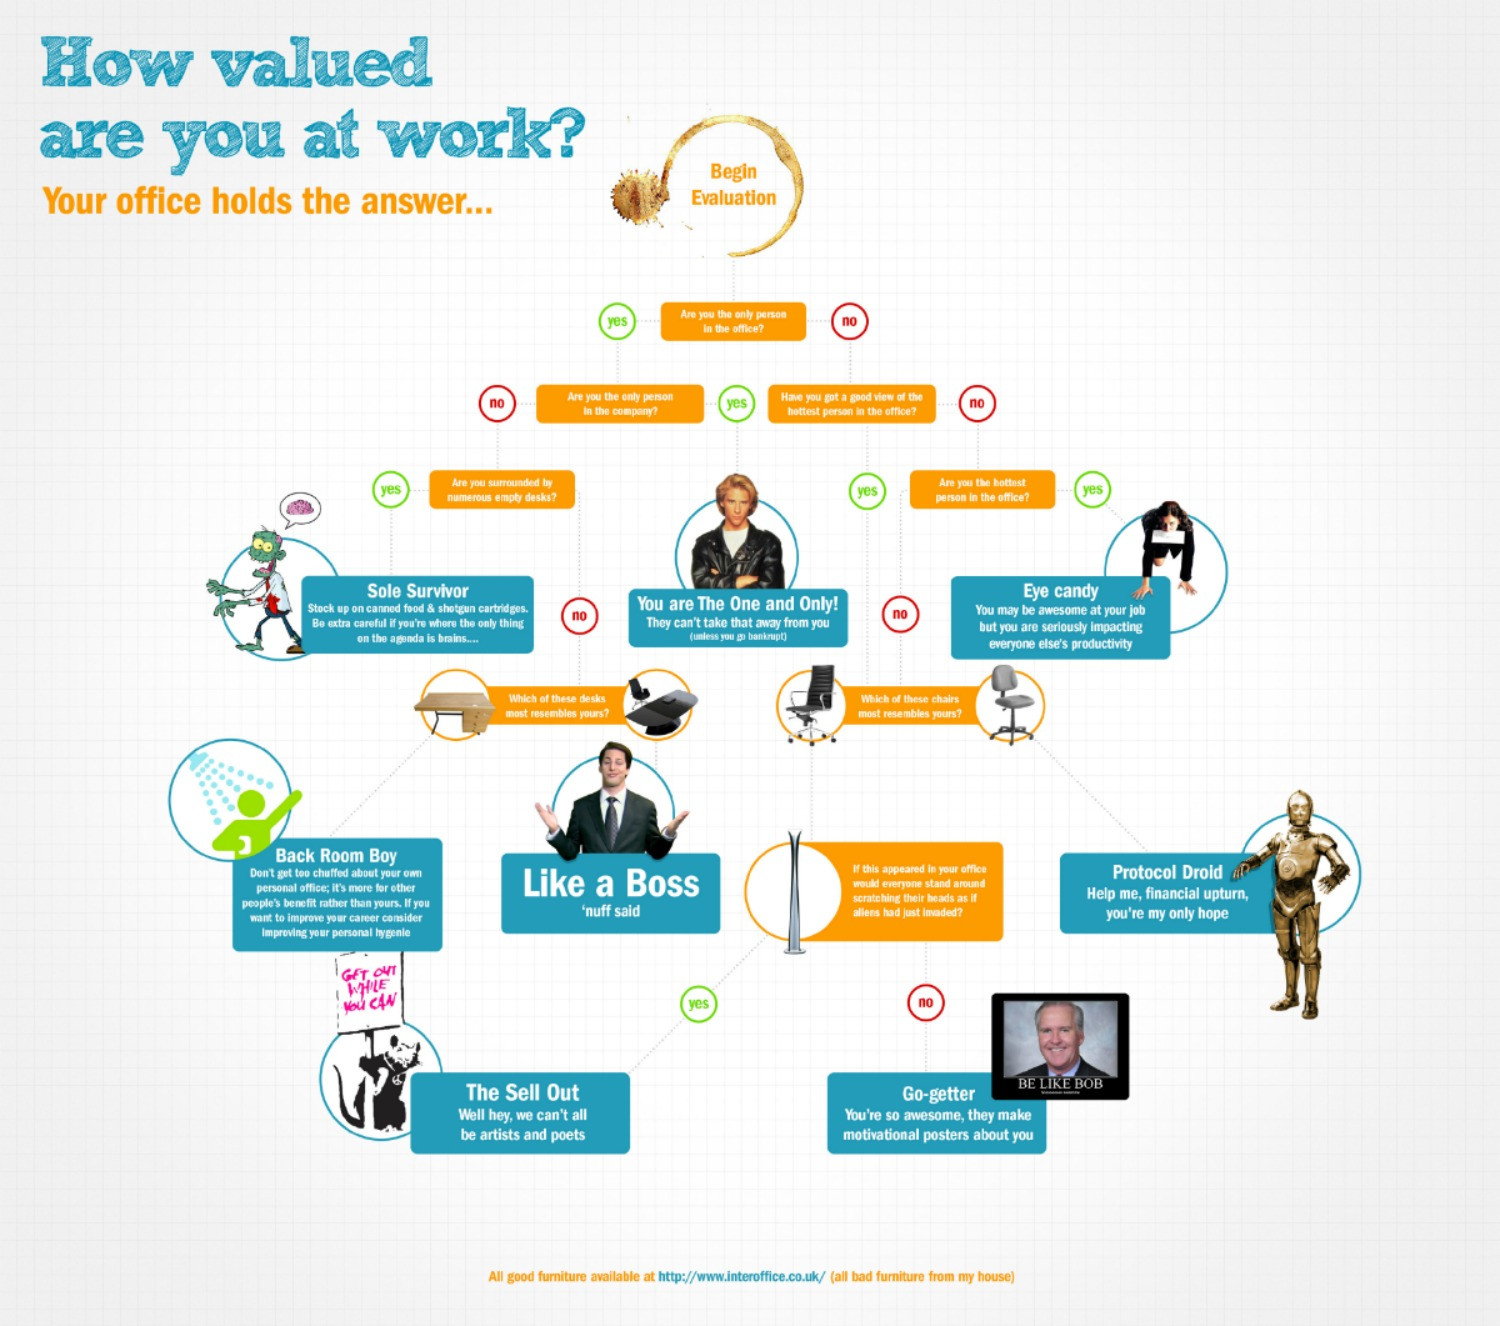 How valued are you at work? Infographic